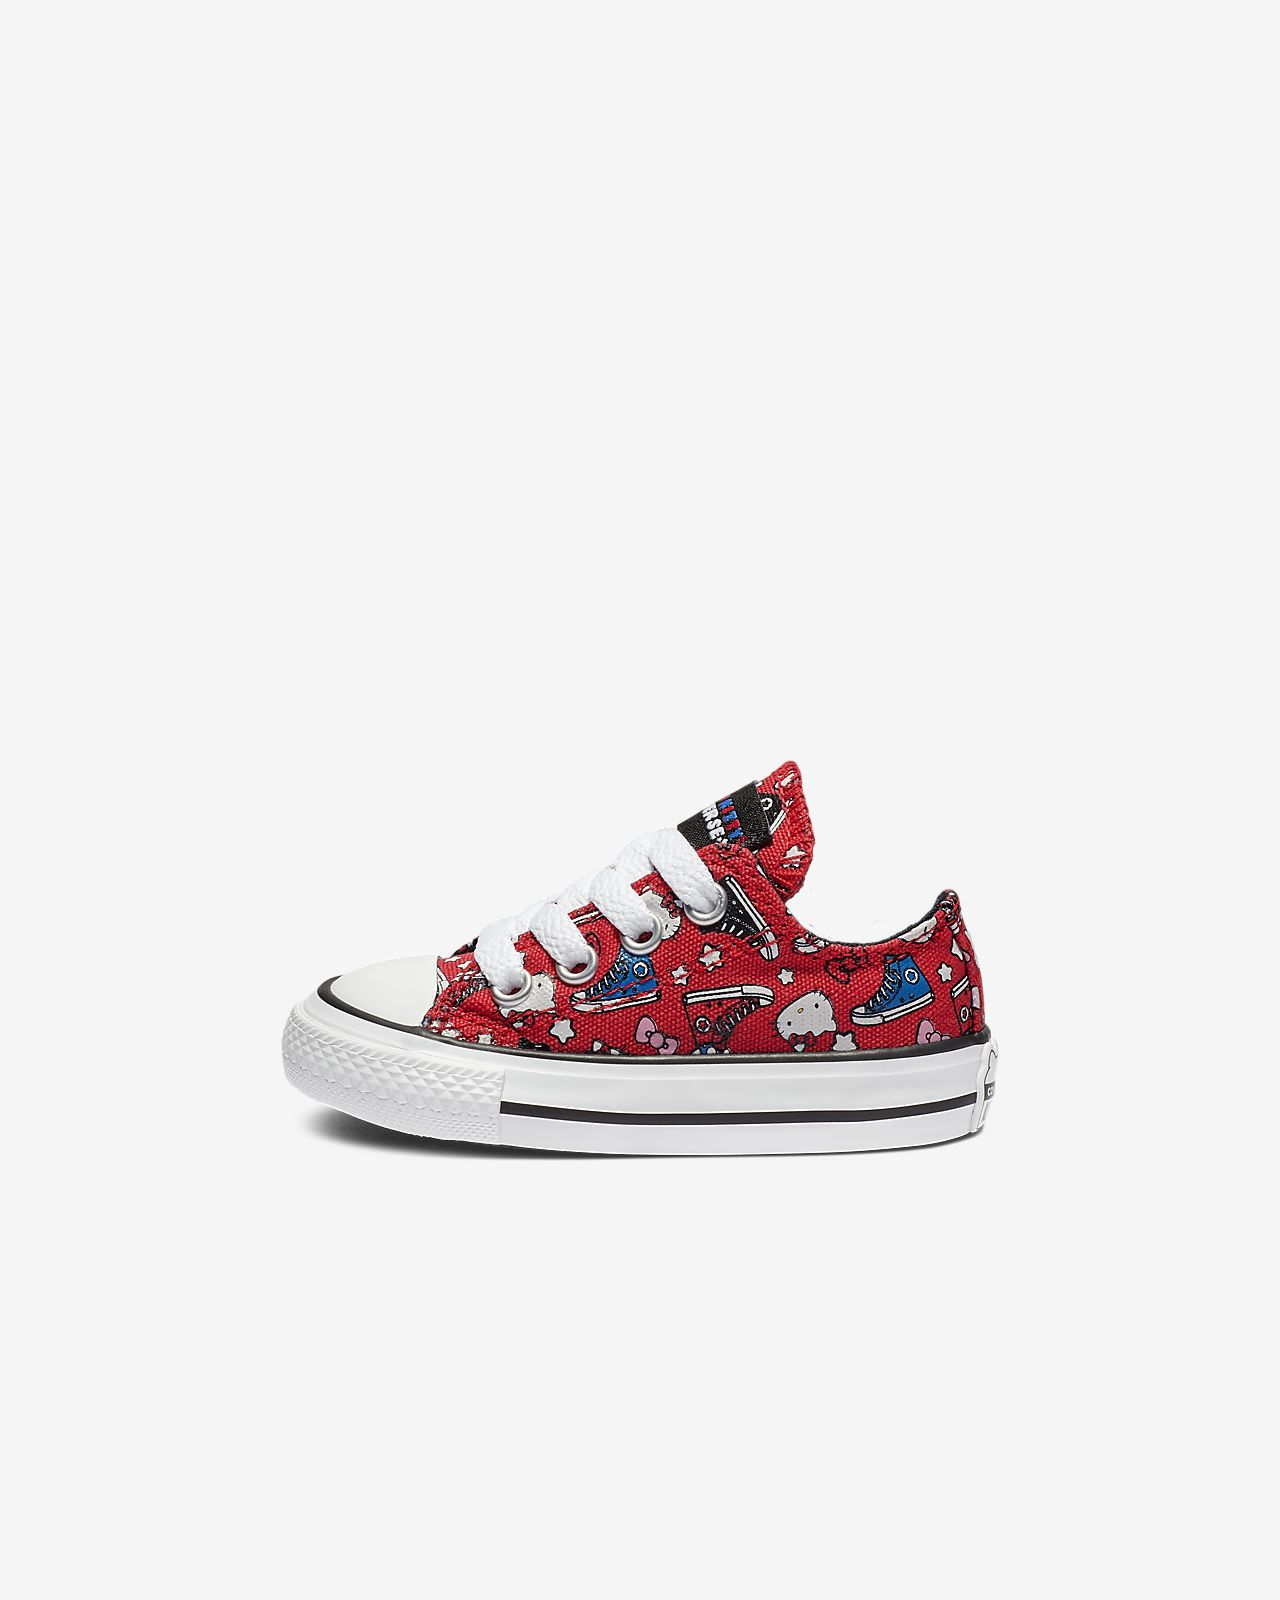 Converse x Hello Kitty Chuck Taylor All Star  Infants' Shoe